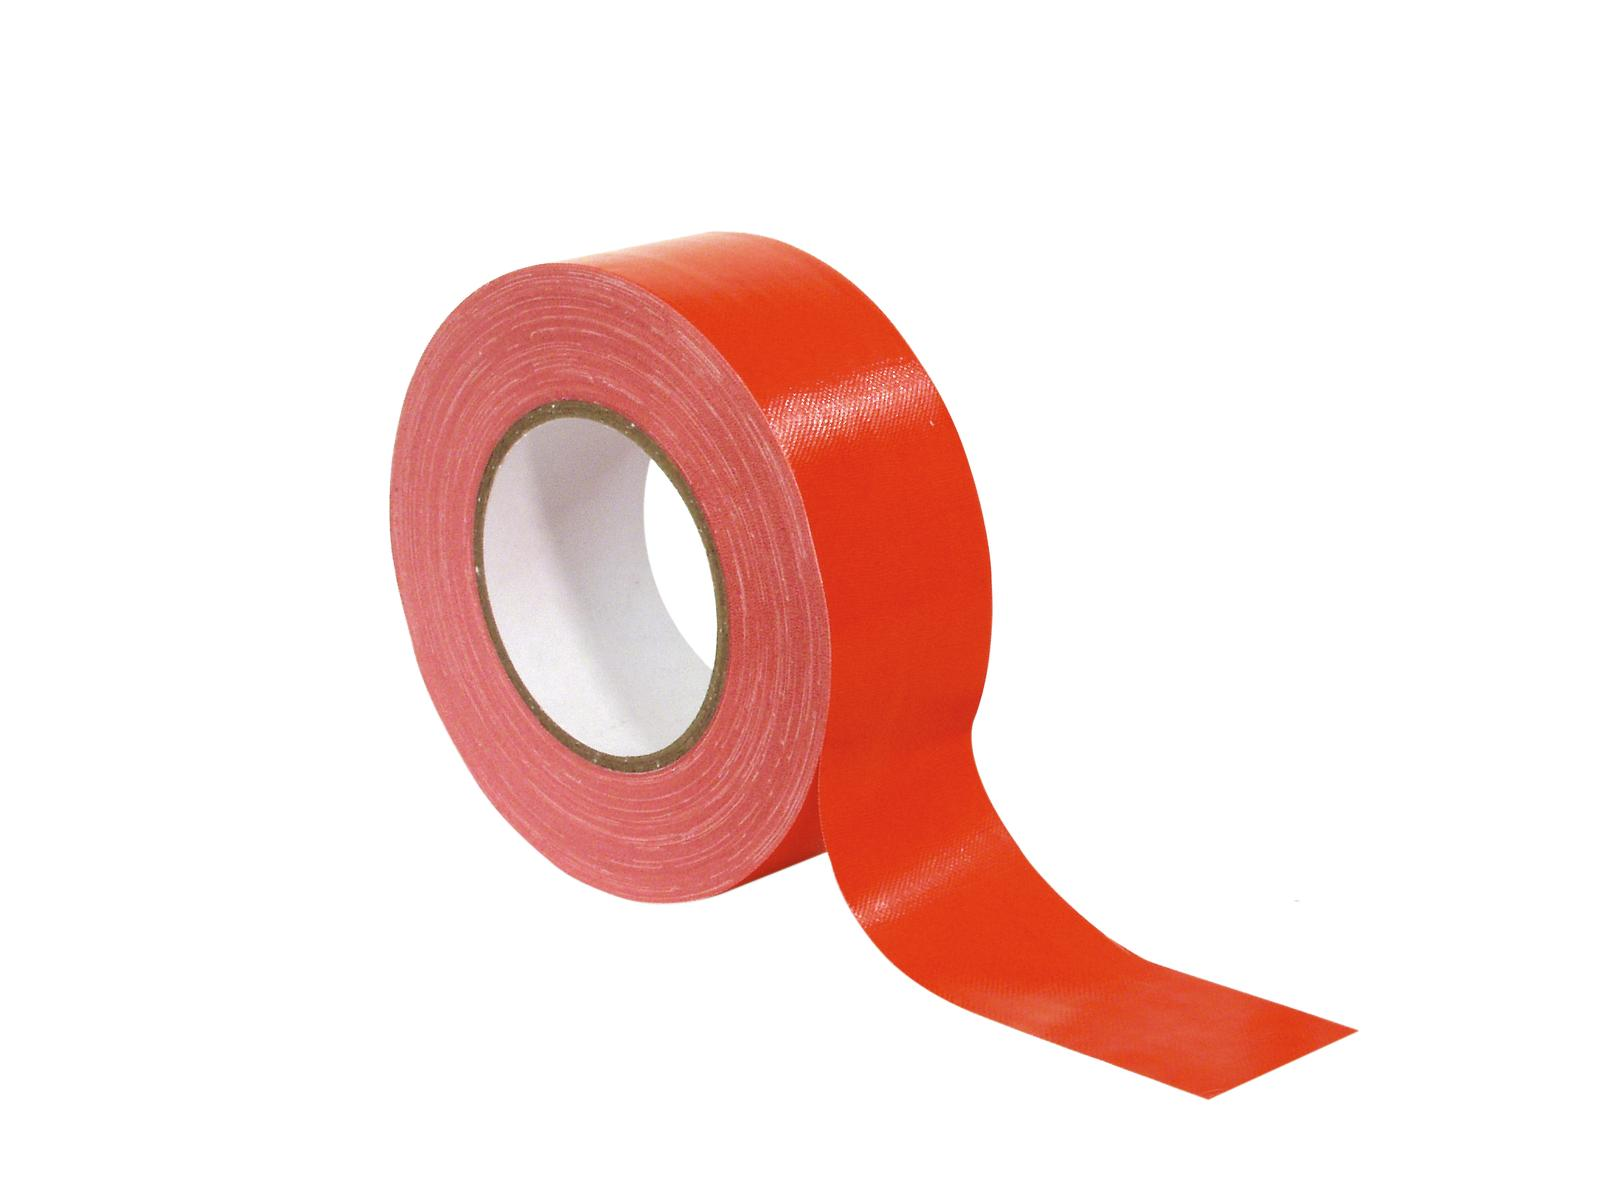 ACCESSORIO ai gaffa Tape Pro 50mm x 50m rosso